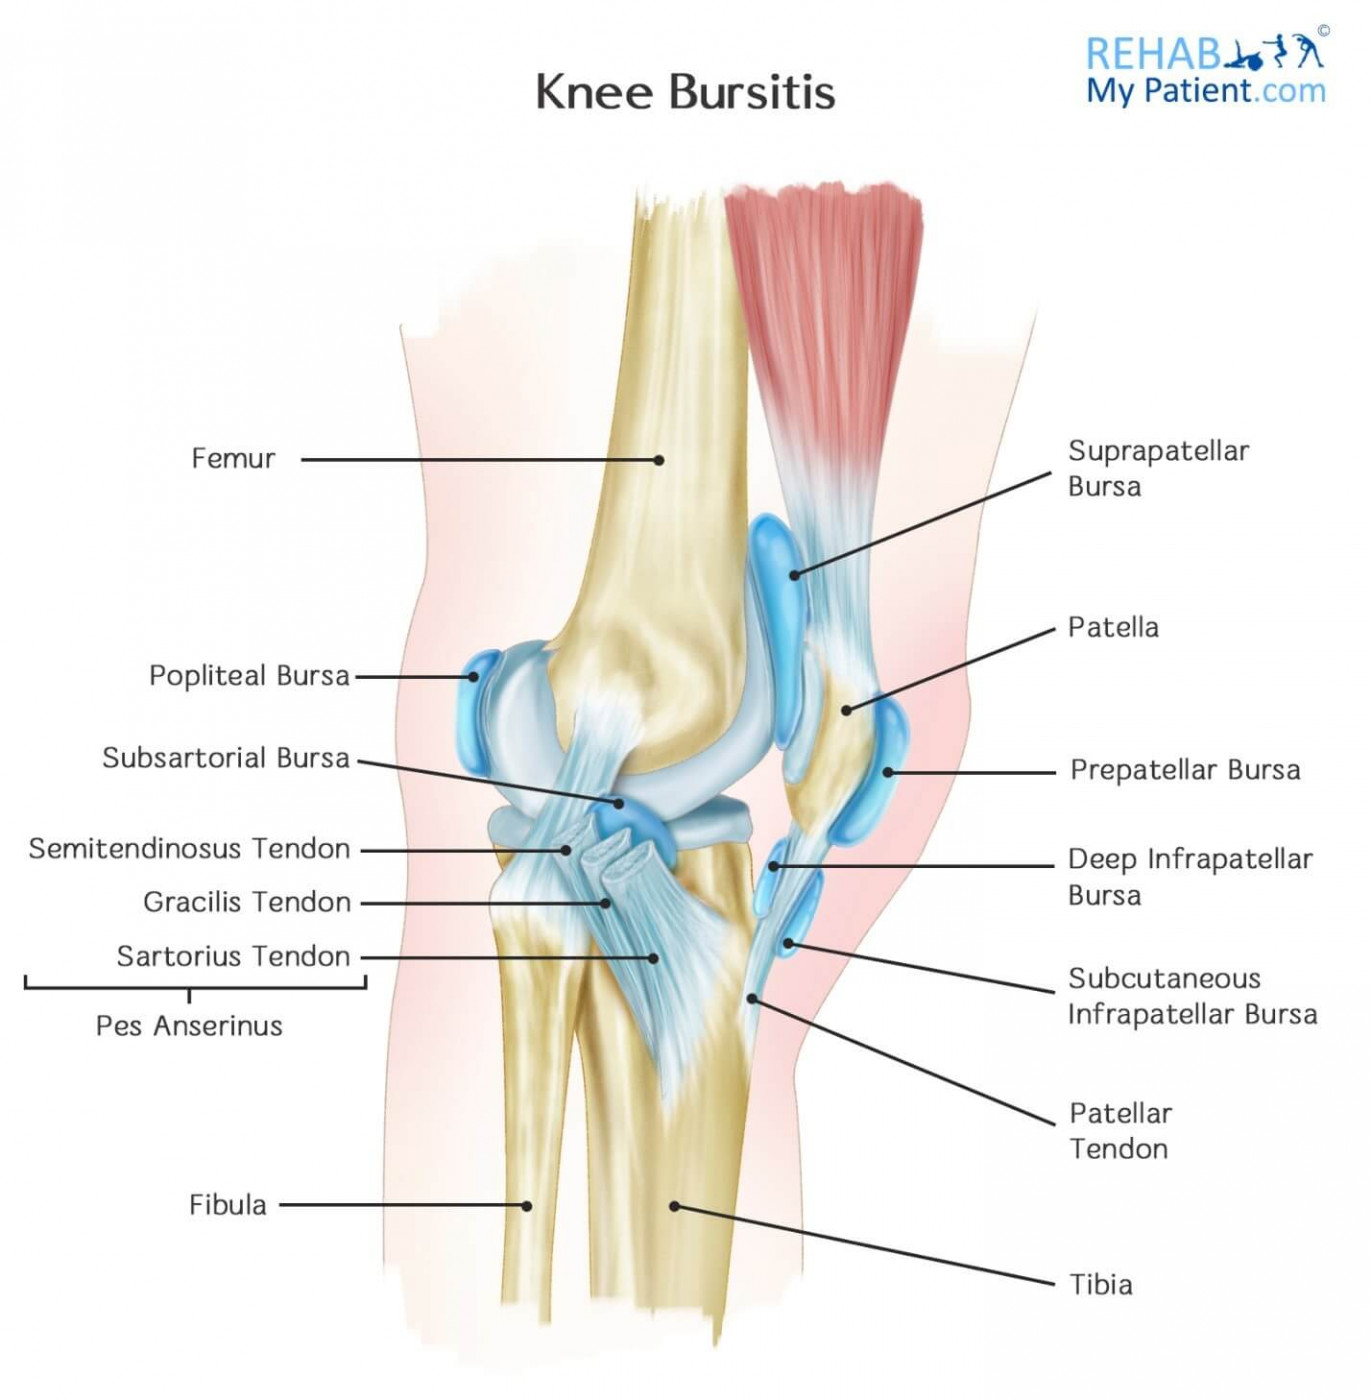 Knee Bursitis Rehab My Patient